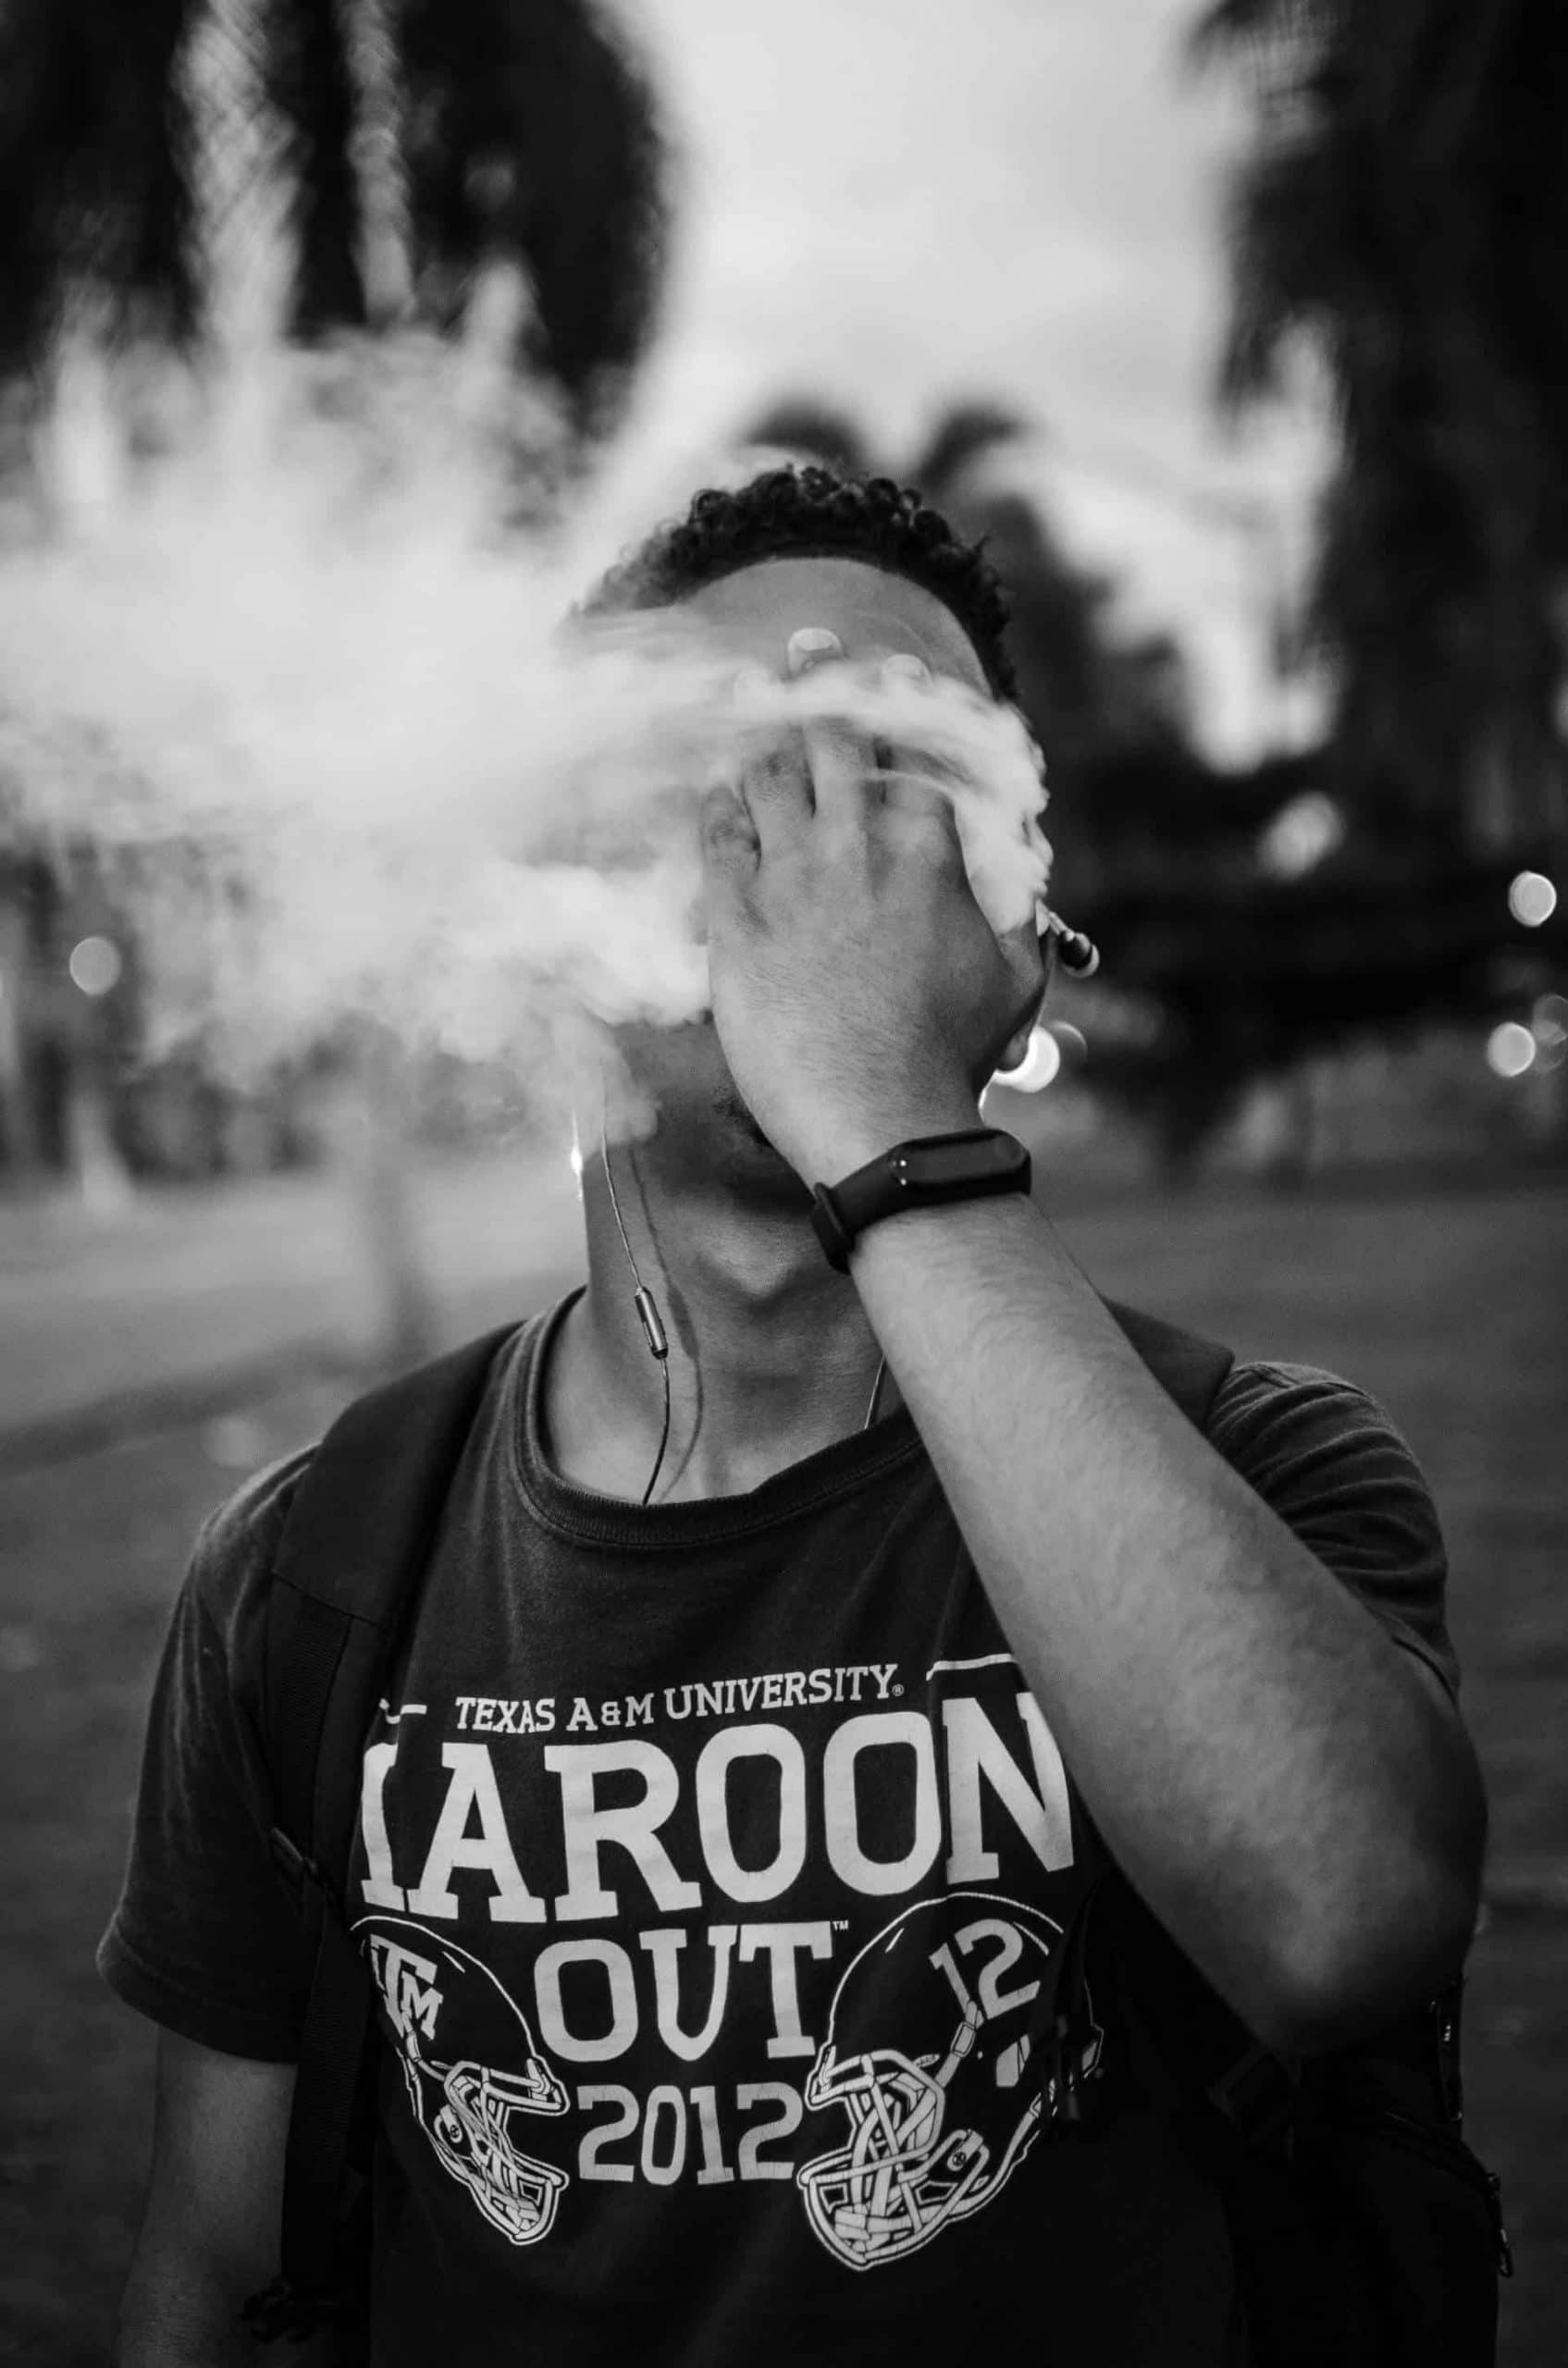 Man covers face while blowing smoke from cannabis weed product